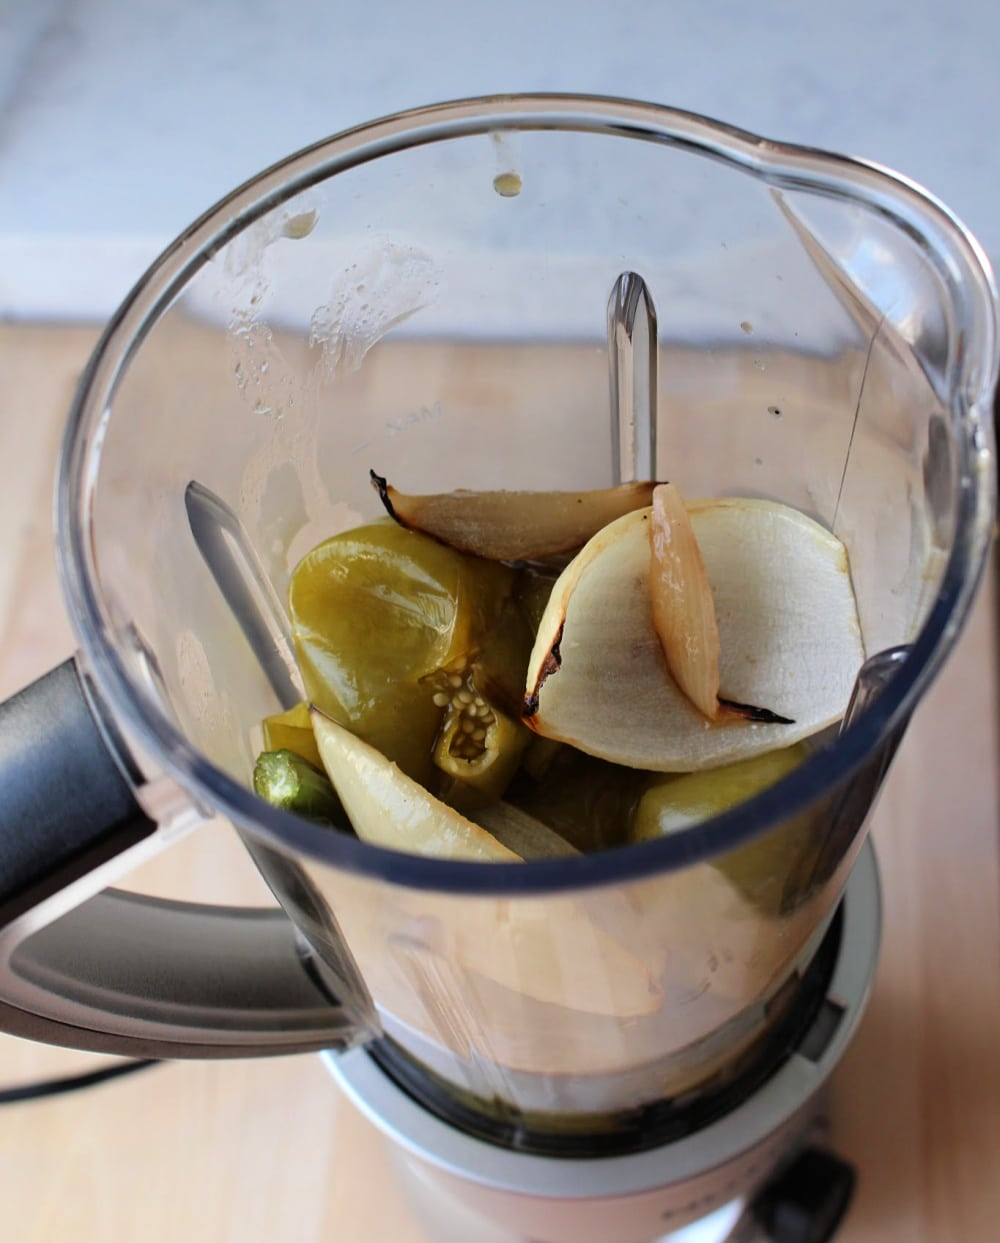 Blender with roasted tomatillos and onion.